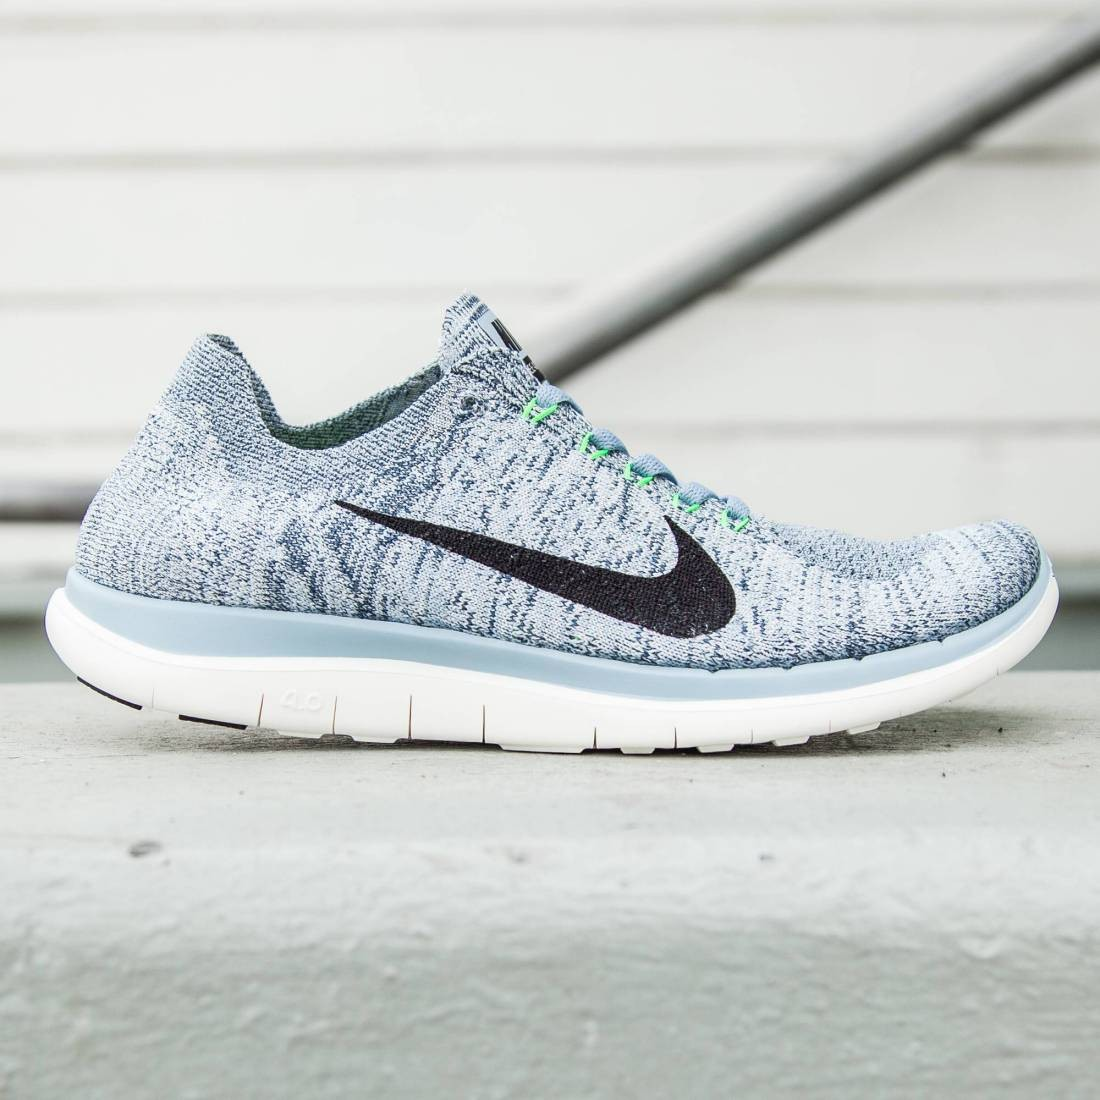 Nike Free 4.0 Flyknit Blue Grey/Sail/Voltage Green/Black